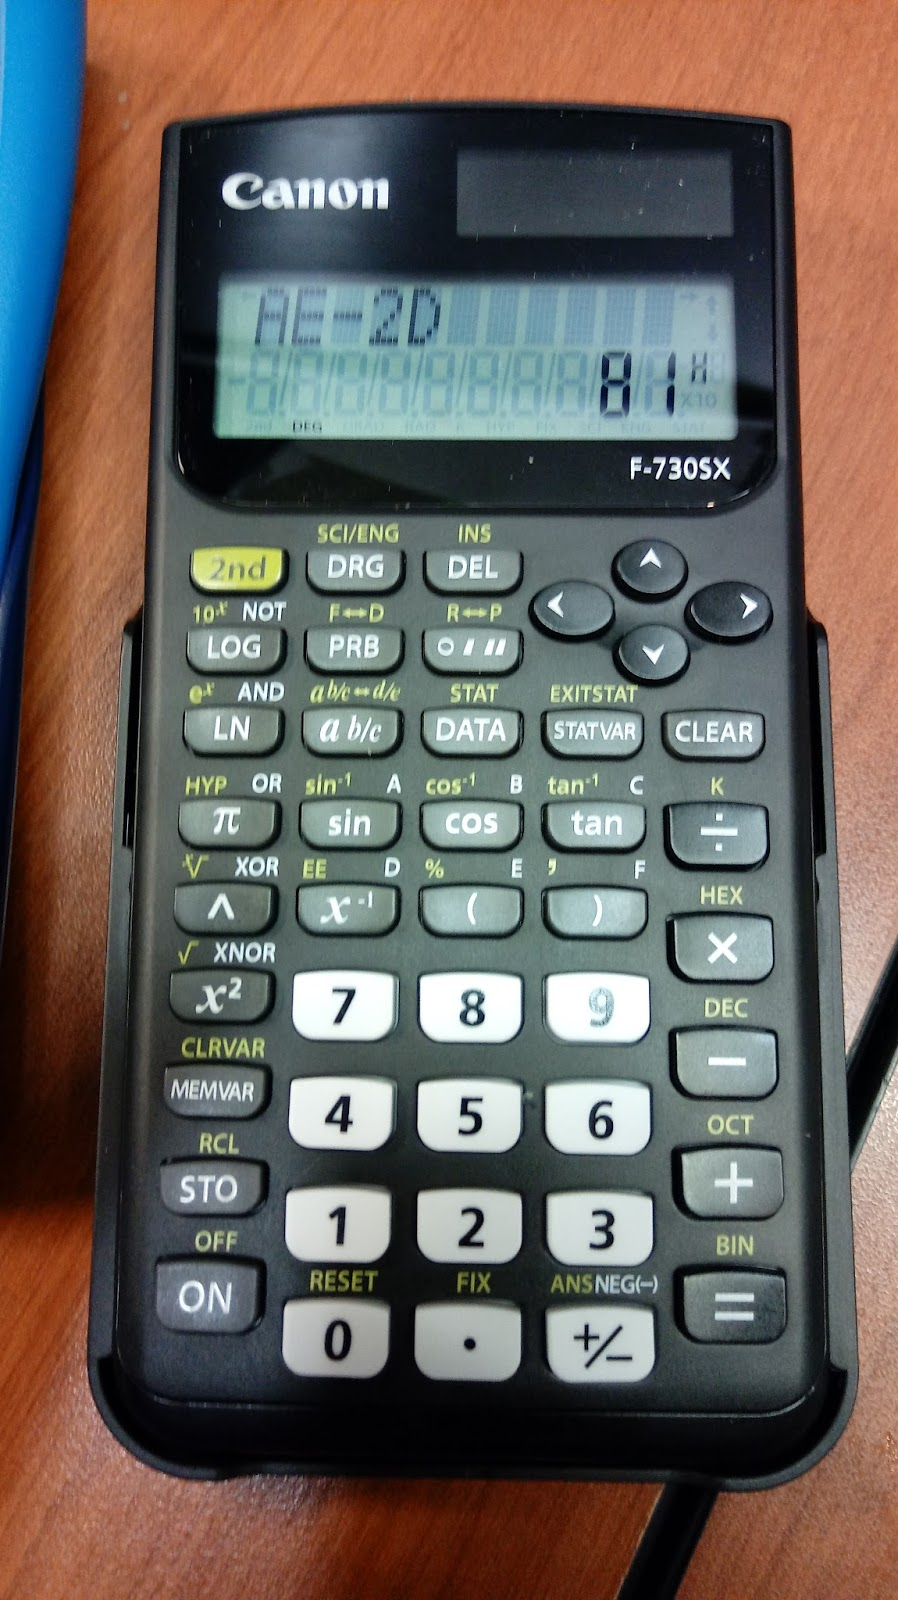 Eddie\'s Math and Calculator Blog: Review: Canon F-730SX Calculator